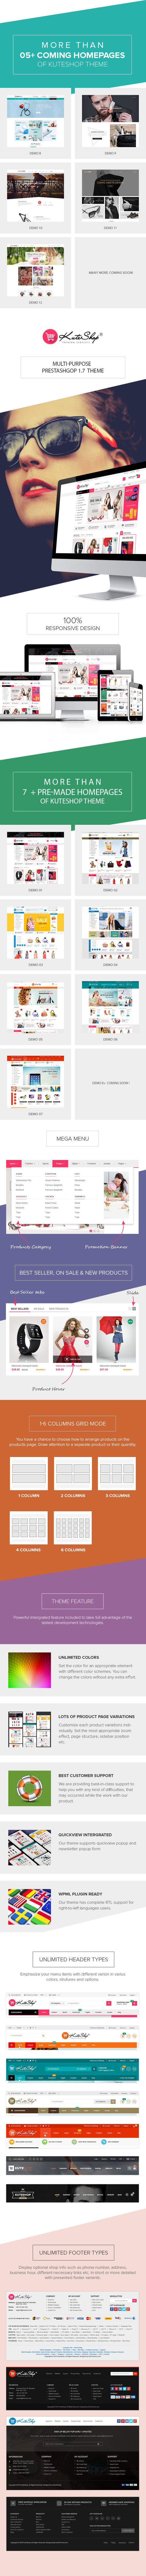 KuteShop - Fashion, Electronics & Marketplace Prestashop 1.7 Theme (RTL Supported) - 1